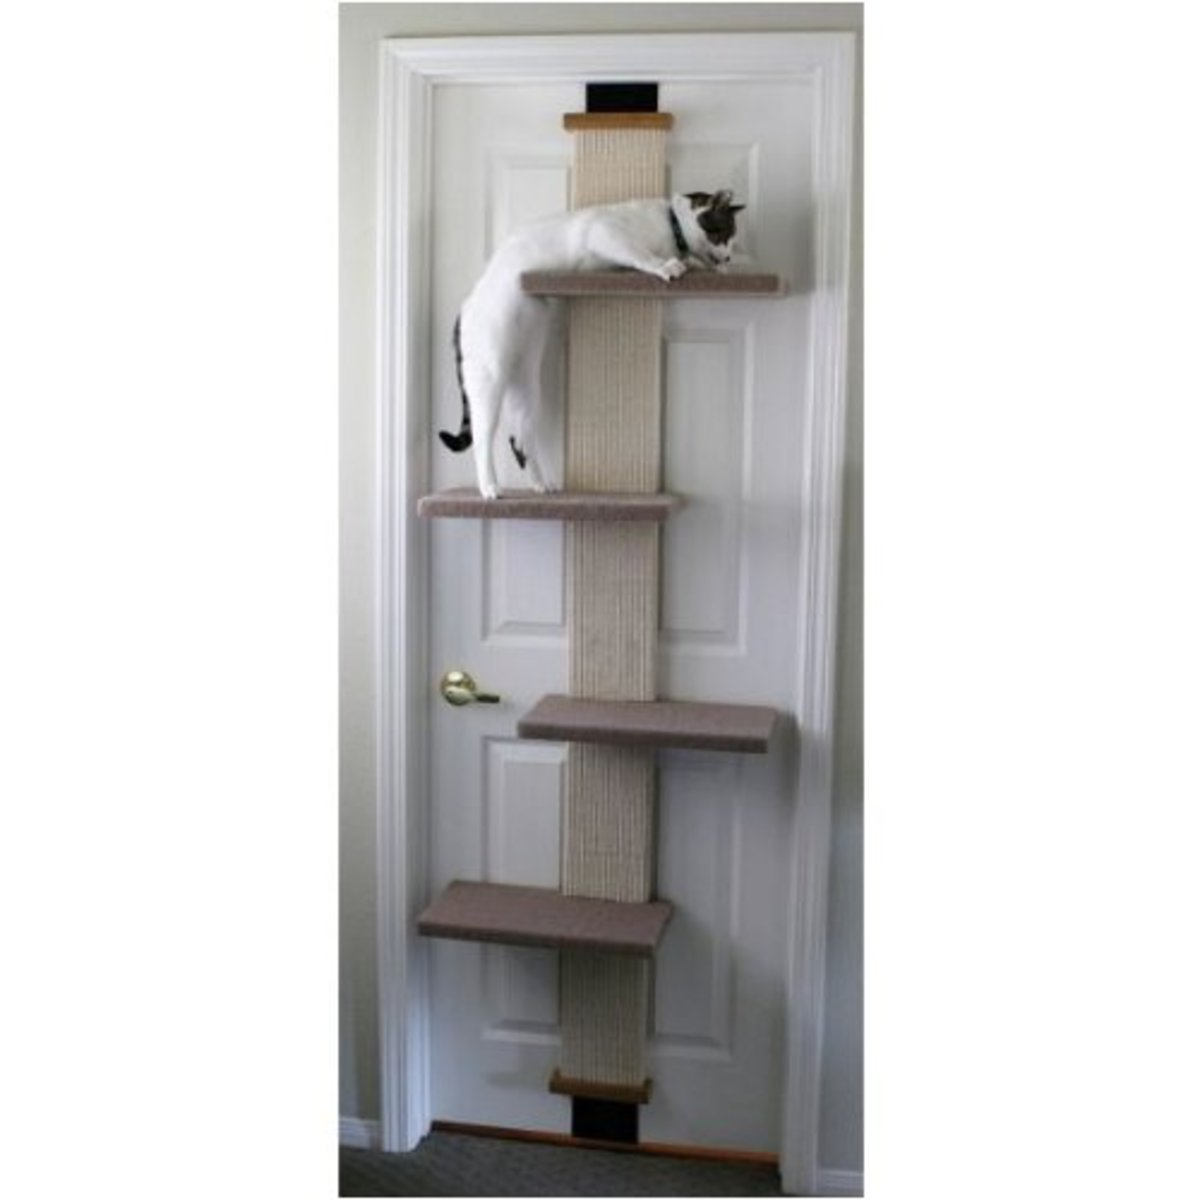 The Smart Cat Climber attaches to doors that swing.